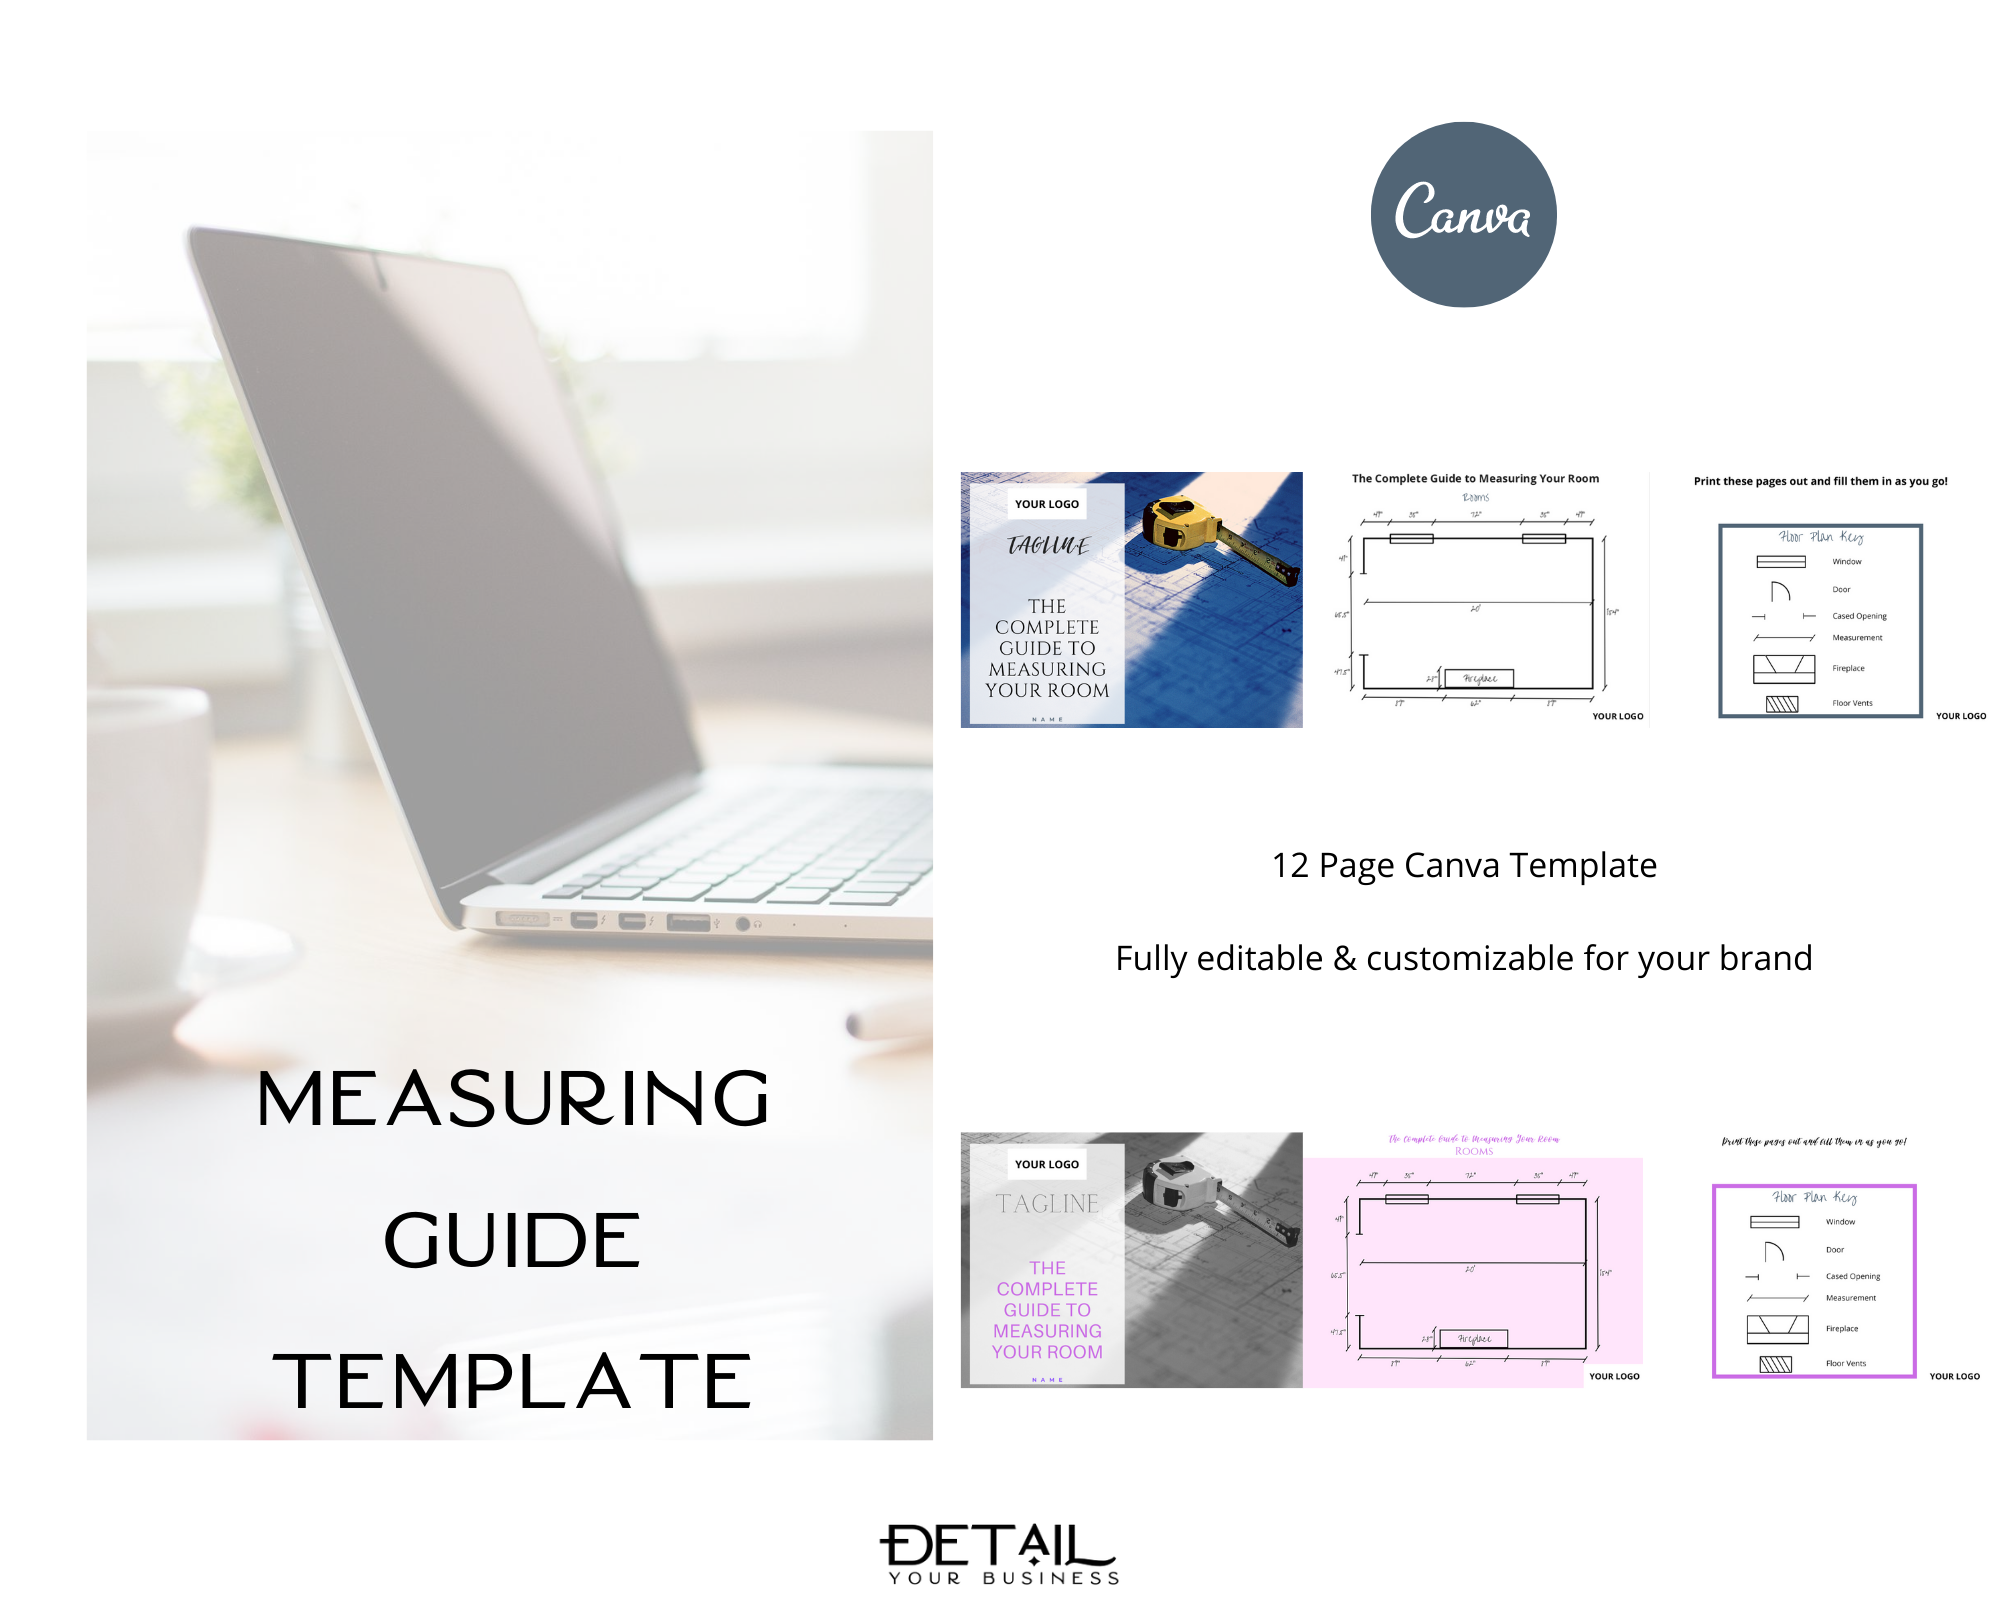 Measuring Guide Template MyDoma Graphic.png